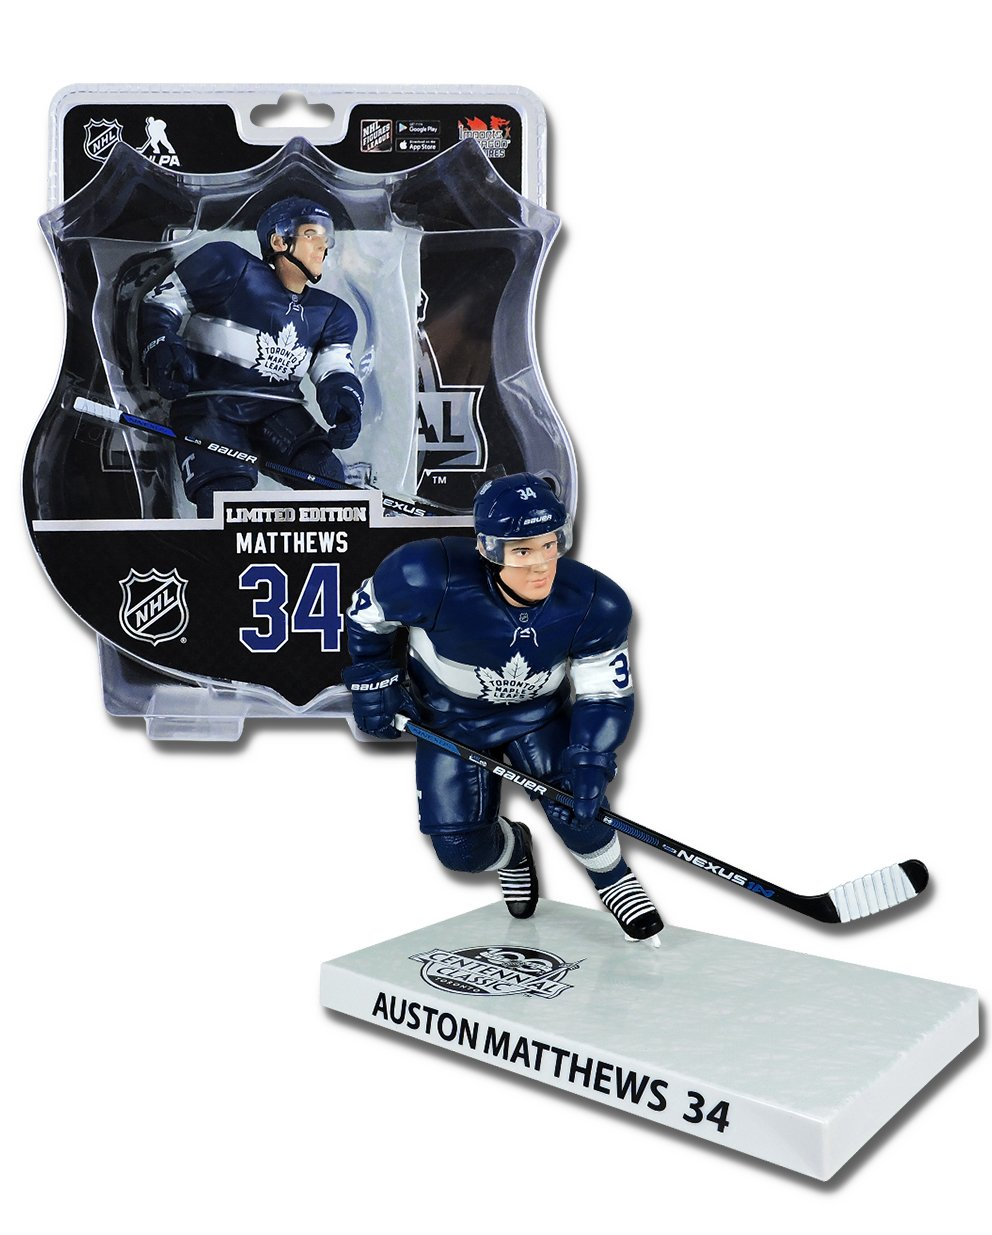 69d62393c8b Imports Dragon Auston Matthews Toronto Maple Leafs Centennial Classic NHL  Figure (16 cm)  Amazon.co.uk  Sports   Outdoors